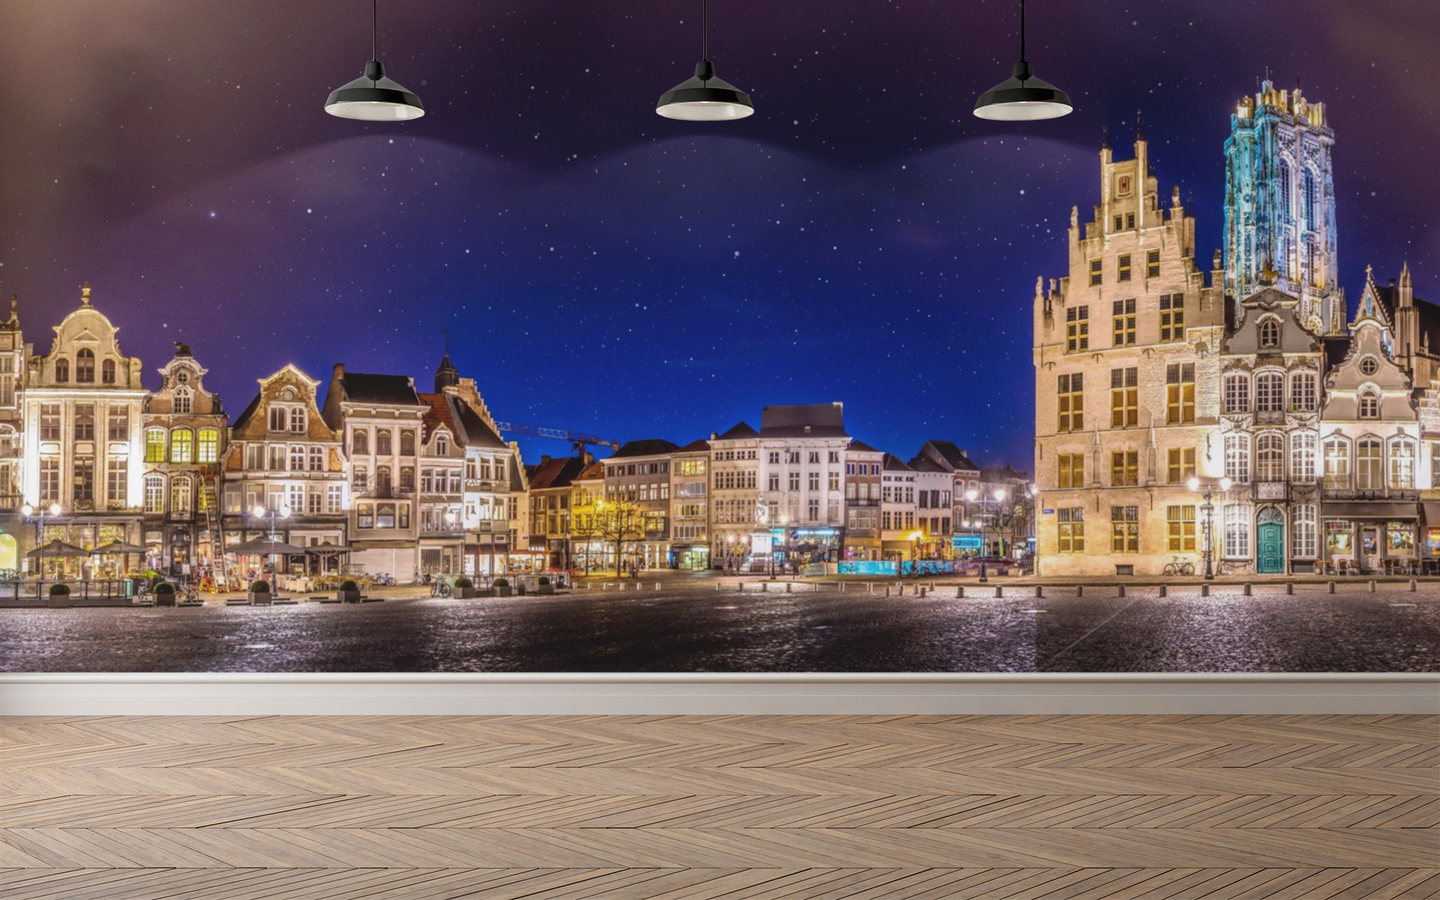 Old City at Night Panoramic - 01160 - Wall Murals Printing - wall art